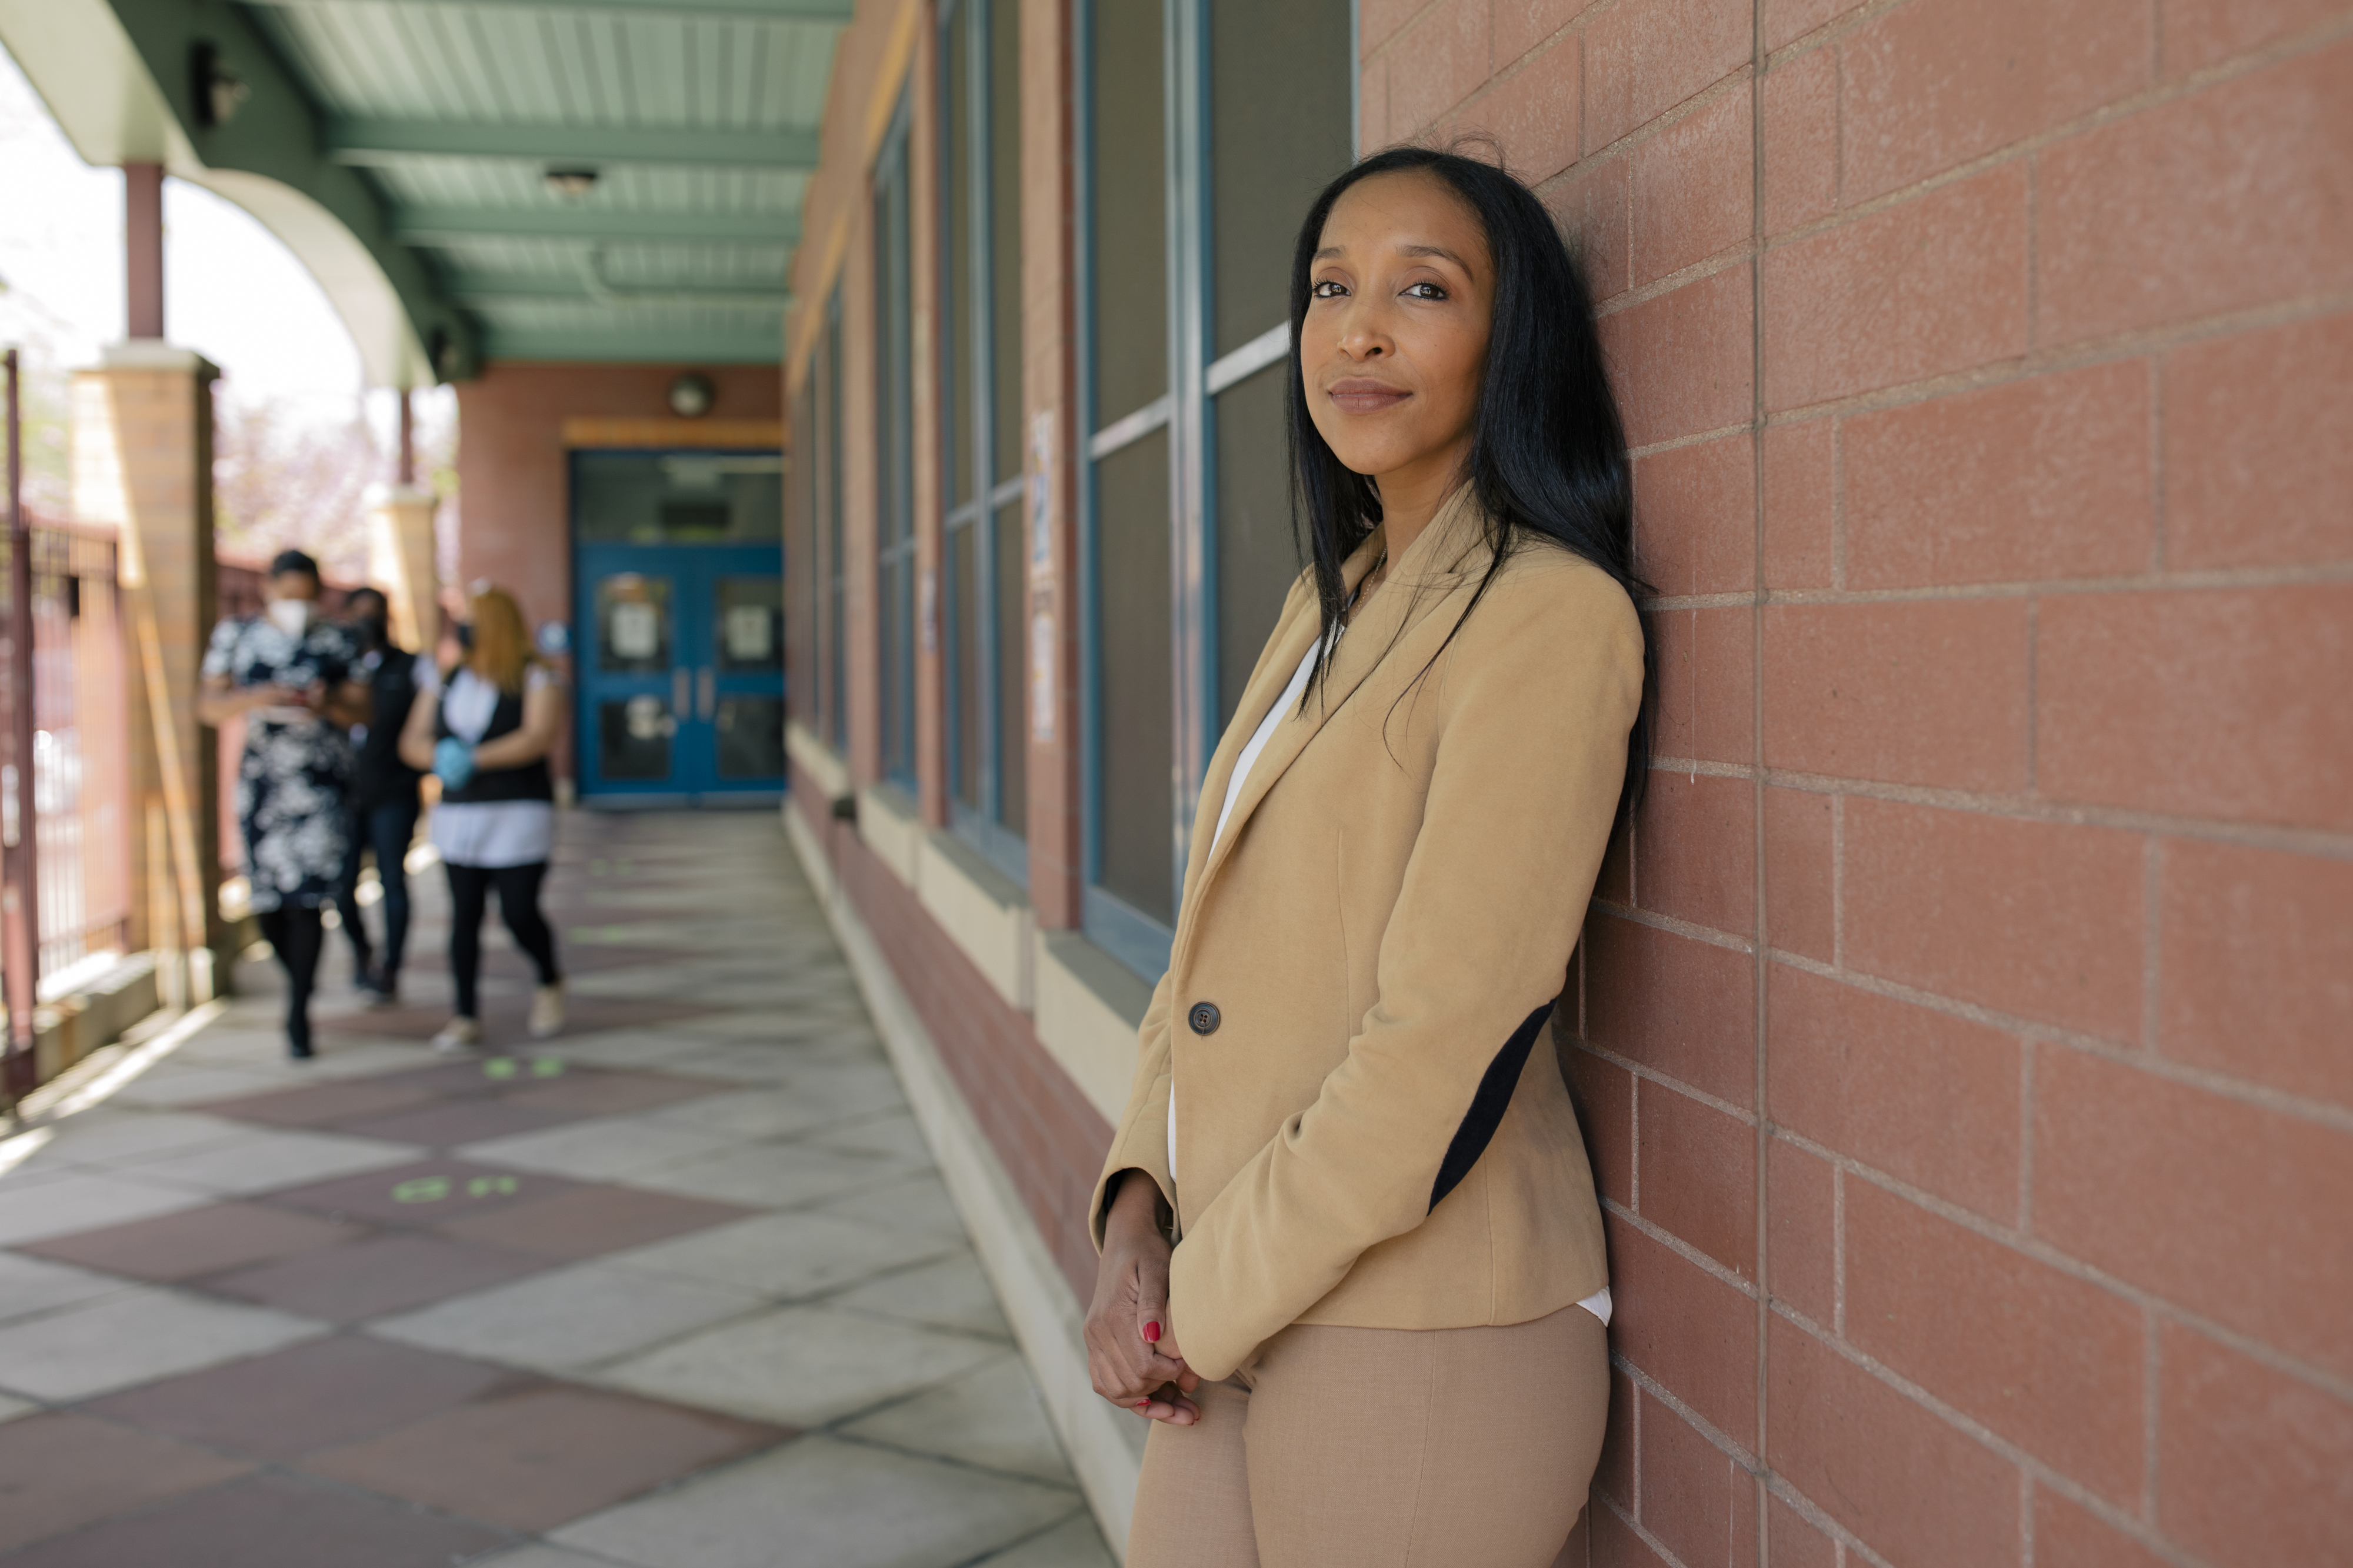 Yasirys Pichardo, wearing a tan pantsuit, stands against a red brick wall lined with windows while three women walk down the the path outside of P.S. 89.